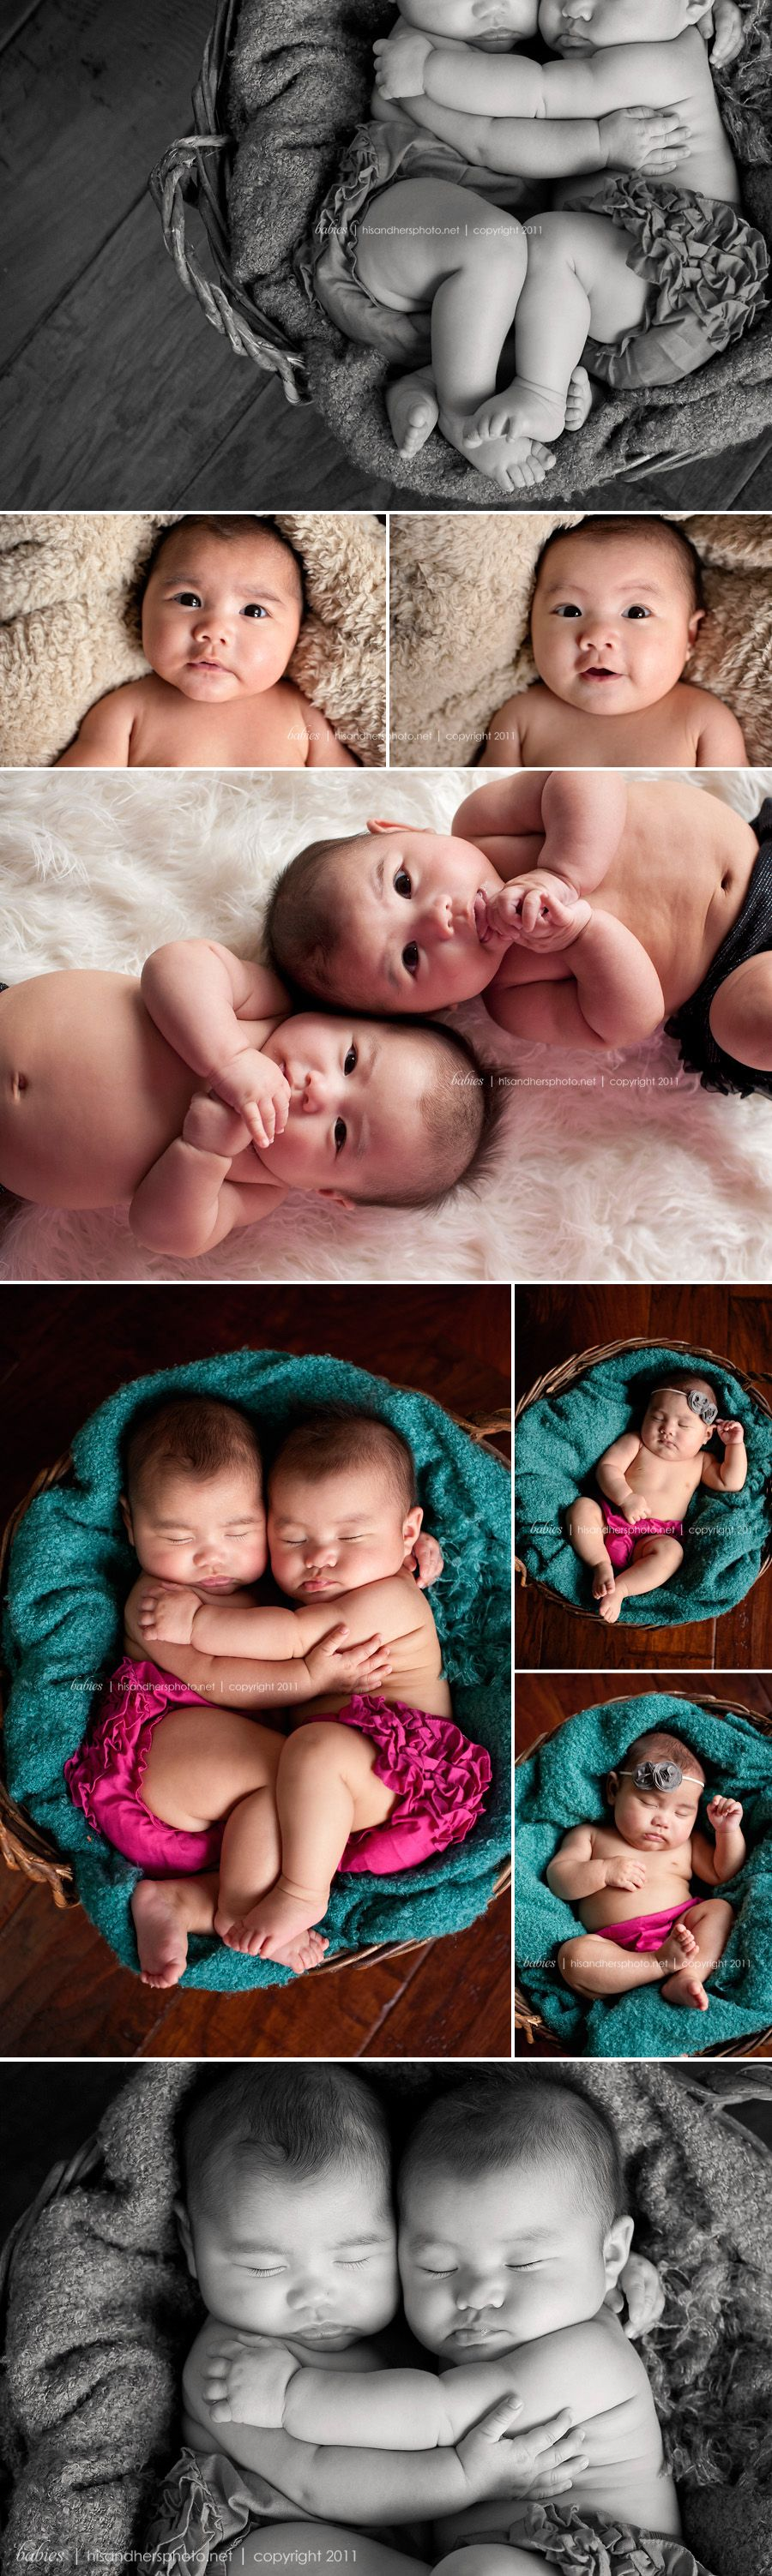 Ava & Ella, 3 month old twins | Des Moines Iowa Baby & Children's Photographer